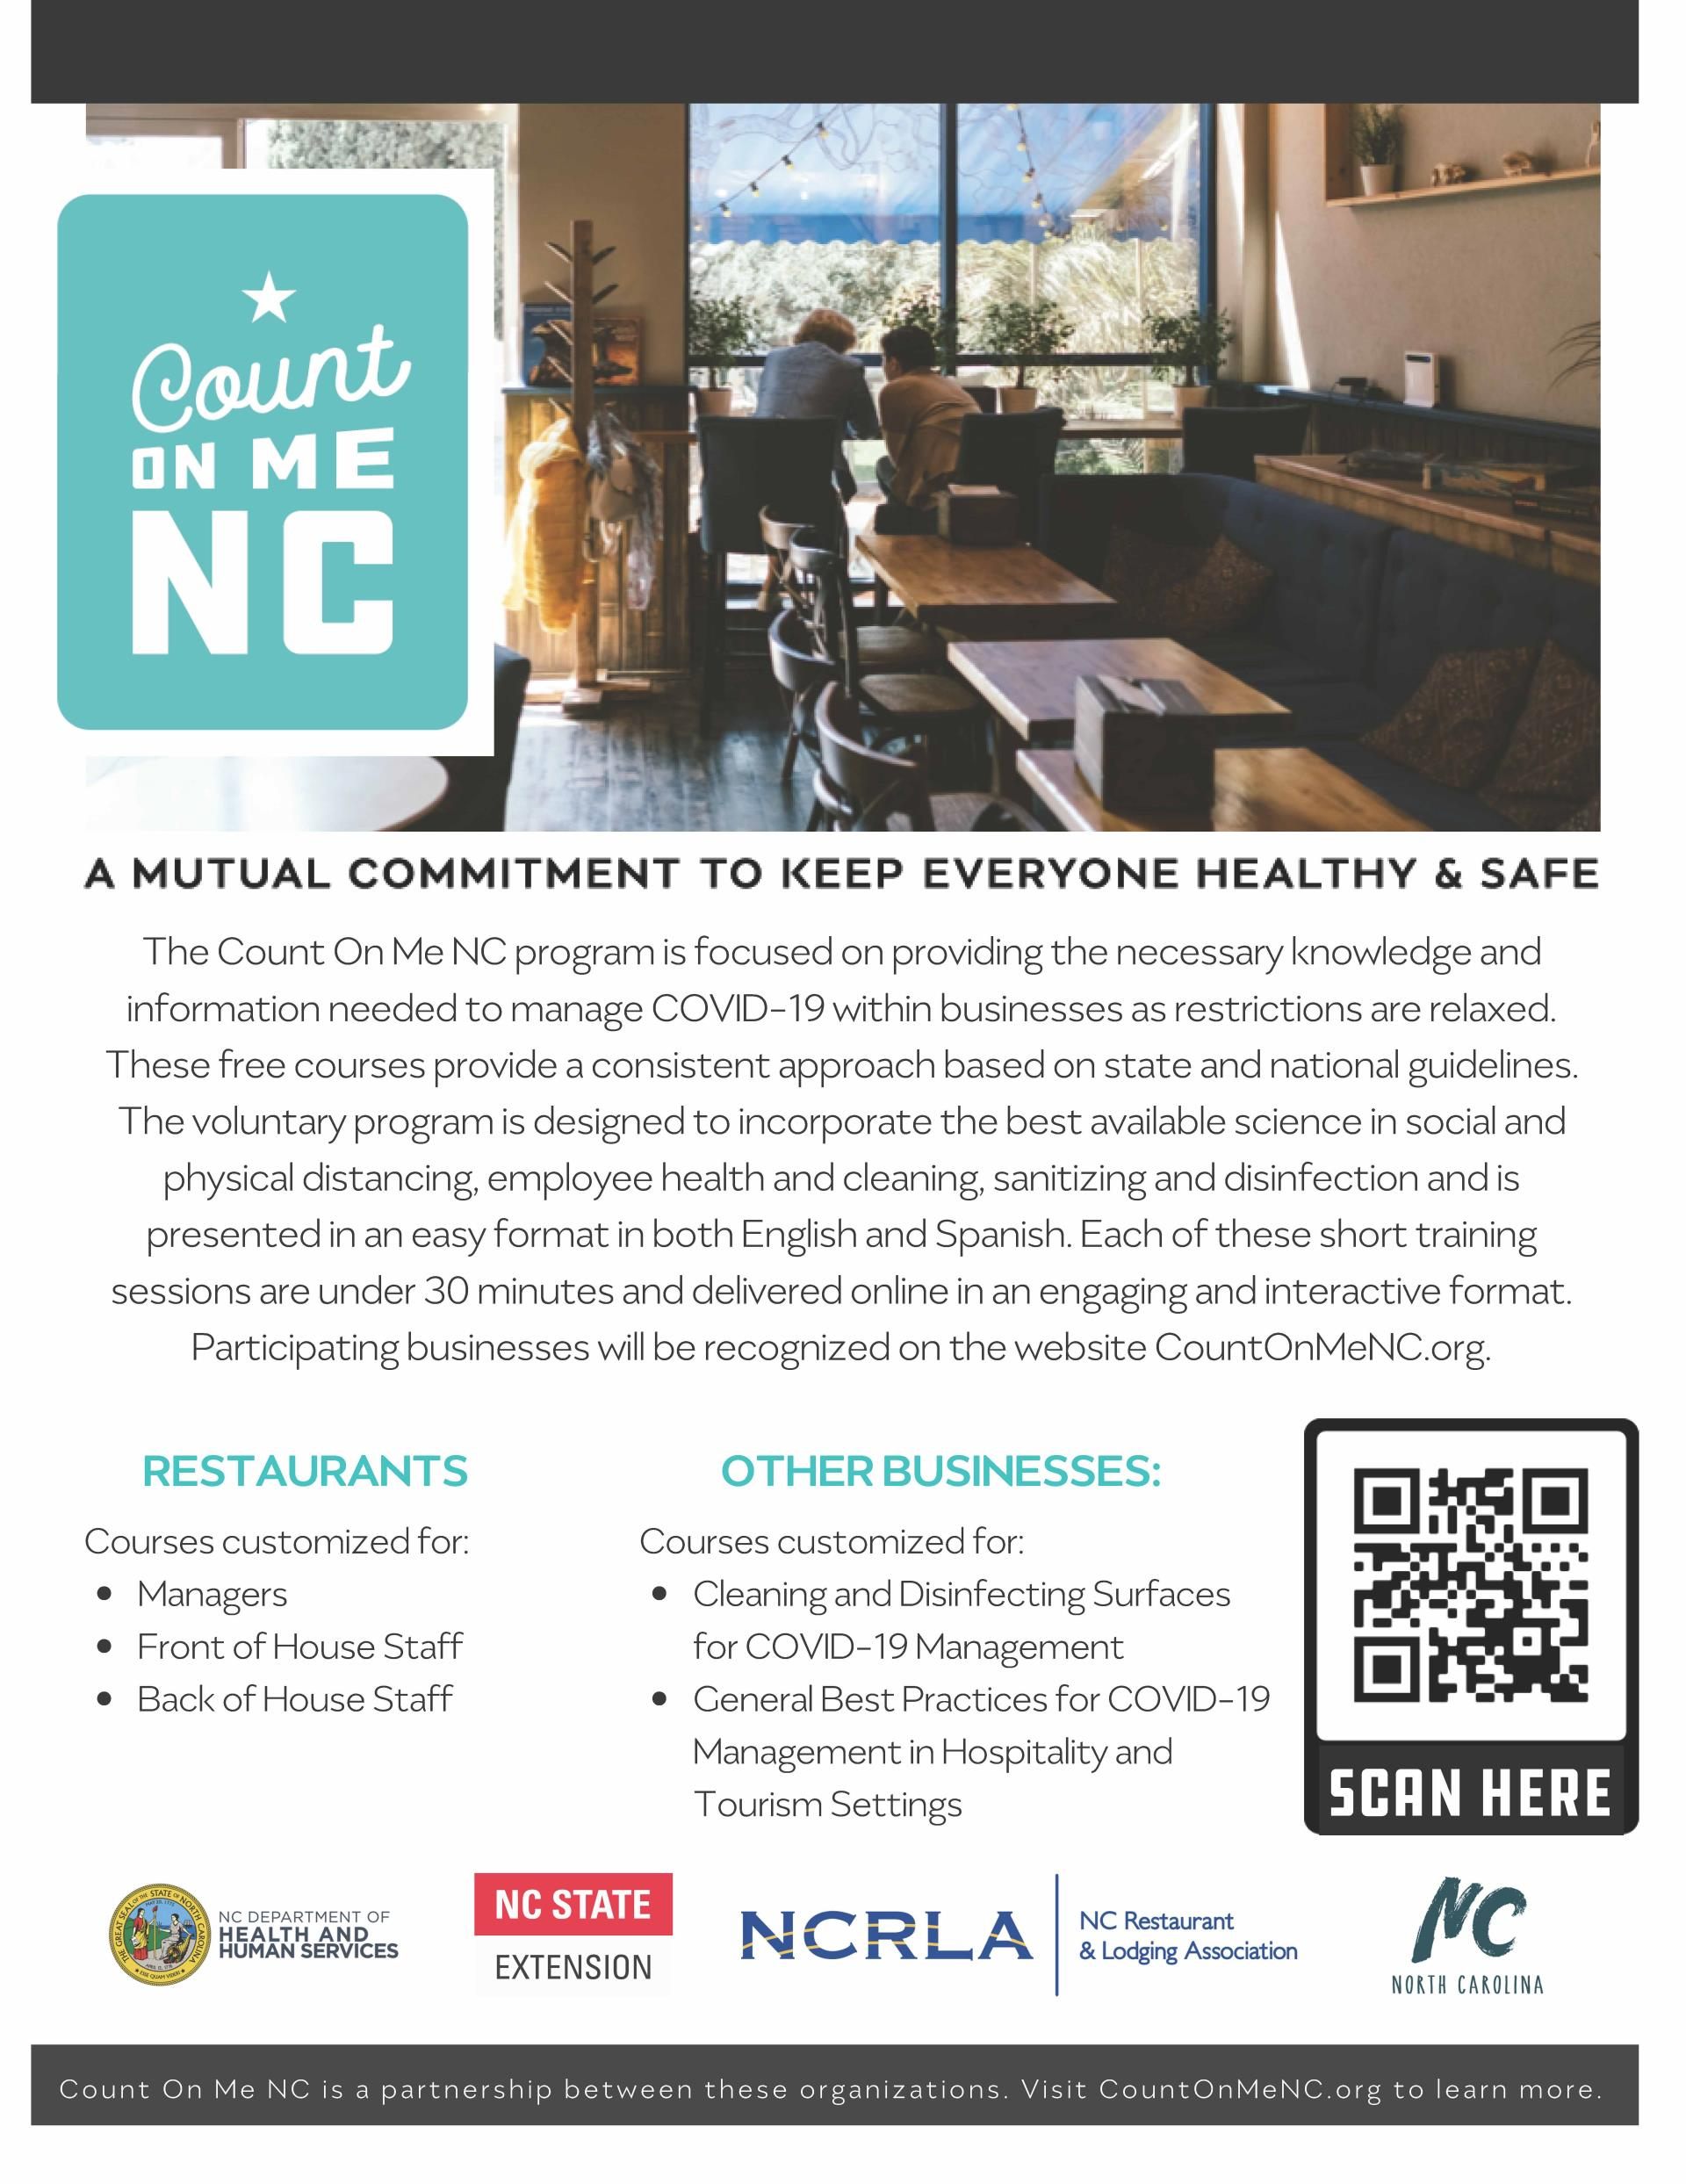 count on me nc information for businesses